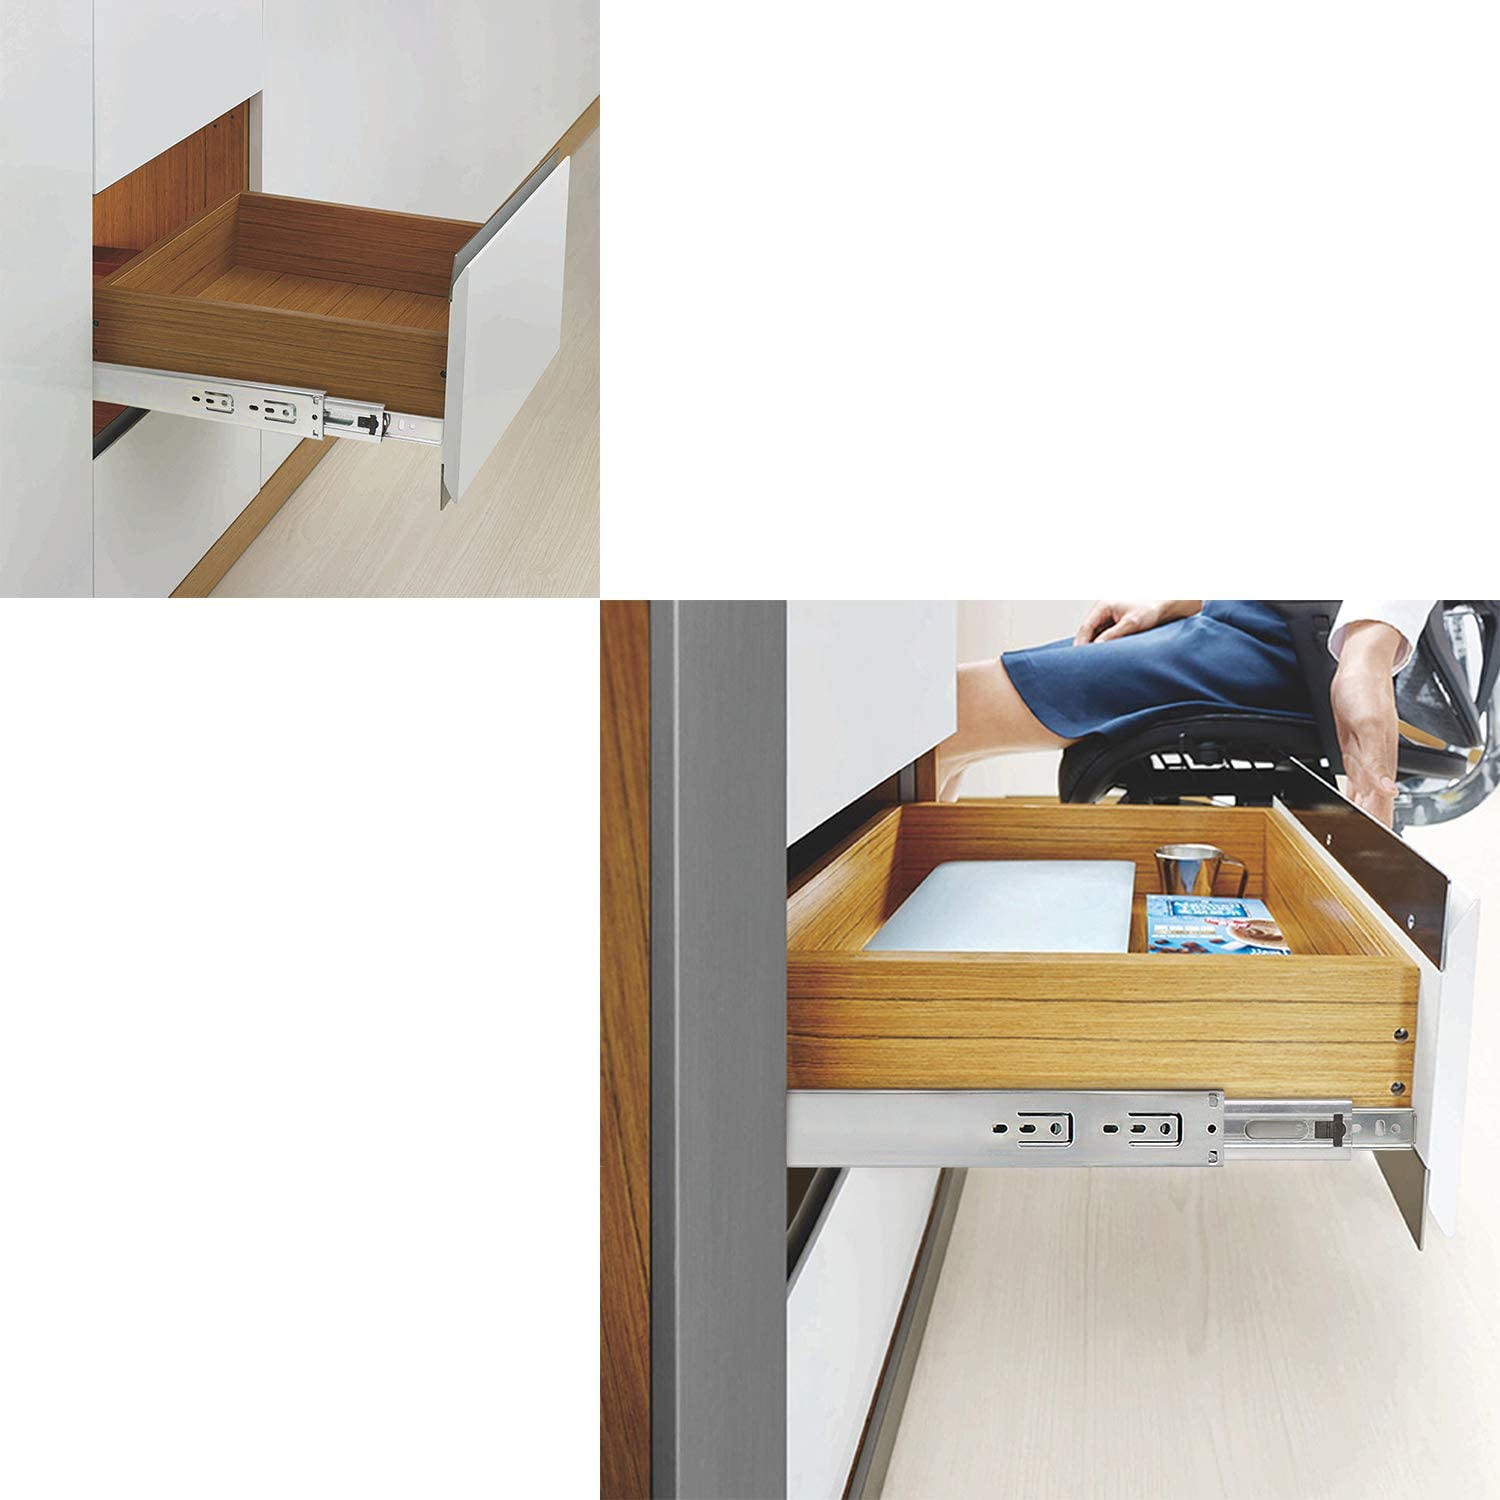 Side Mount Drawer Runners 100 Lb Load Capacity Soft/Closing Drawer Slides Full Extension Ball Bearing 12 Inches 5 Pairs 10 Pcs 3 Fold Heavy Duty Drawer Rails 300mm